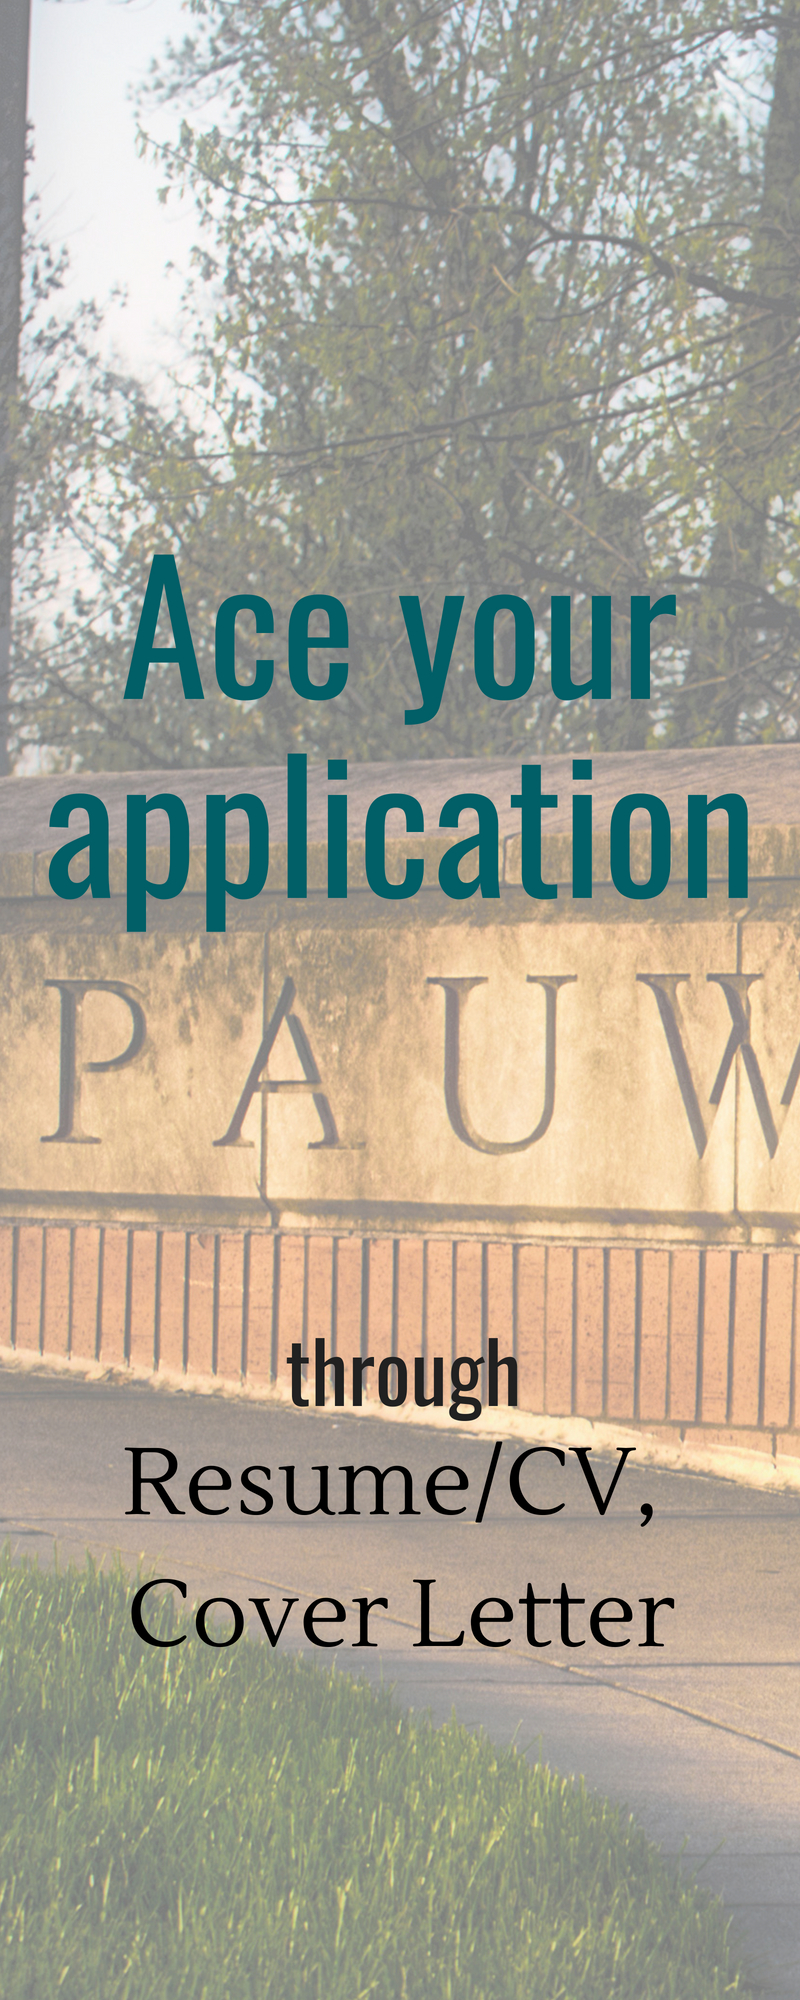 Ace your Application